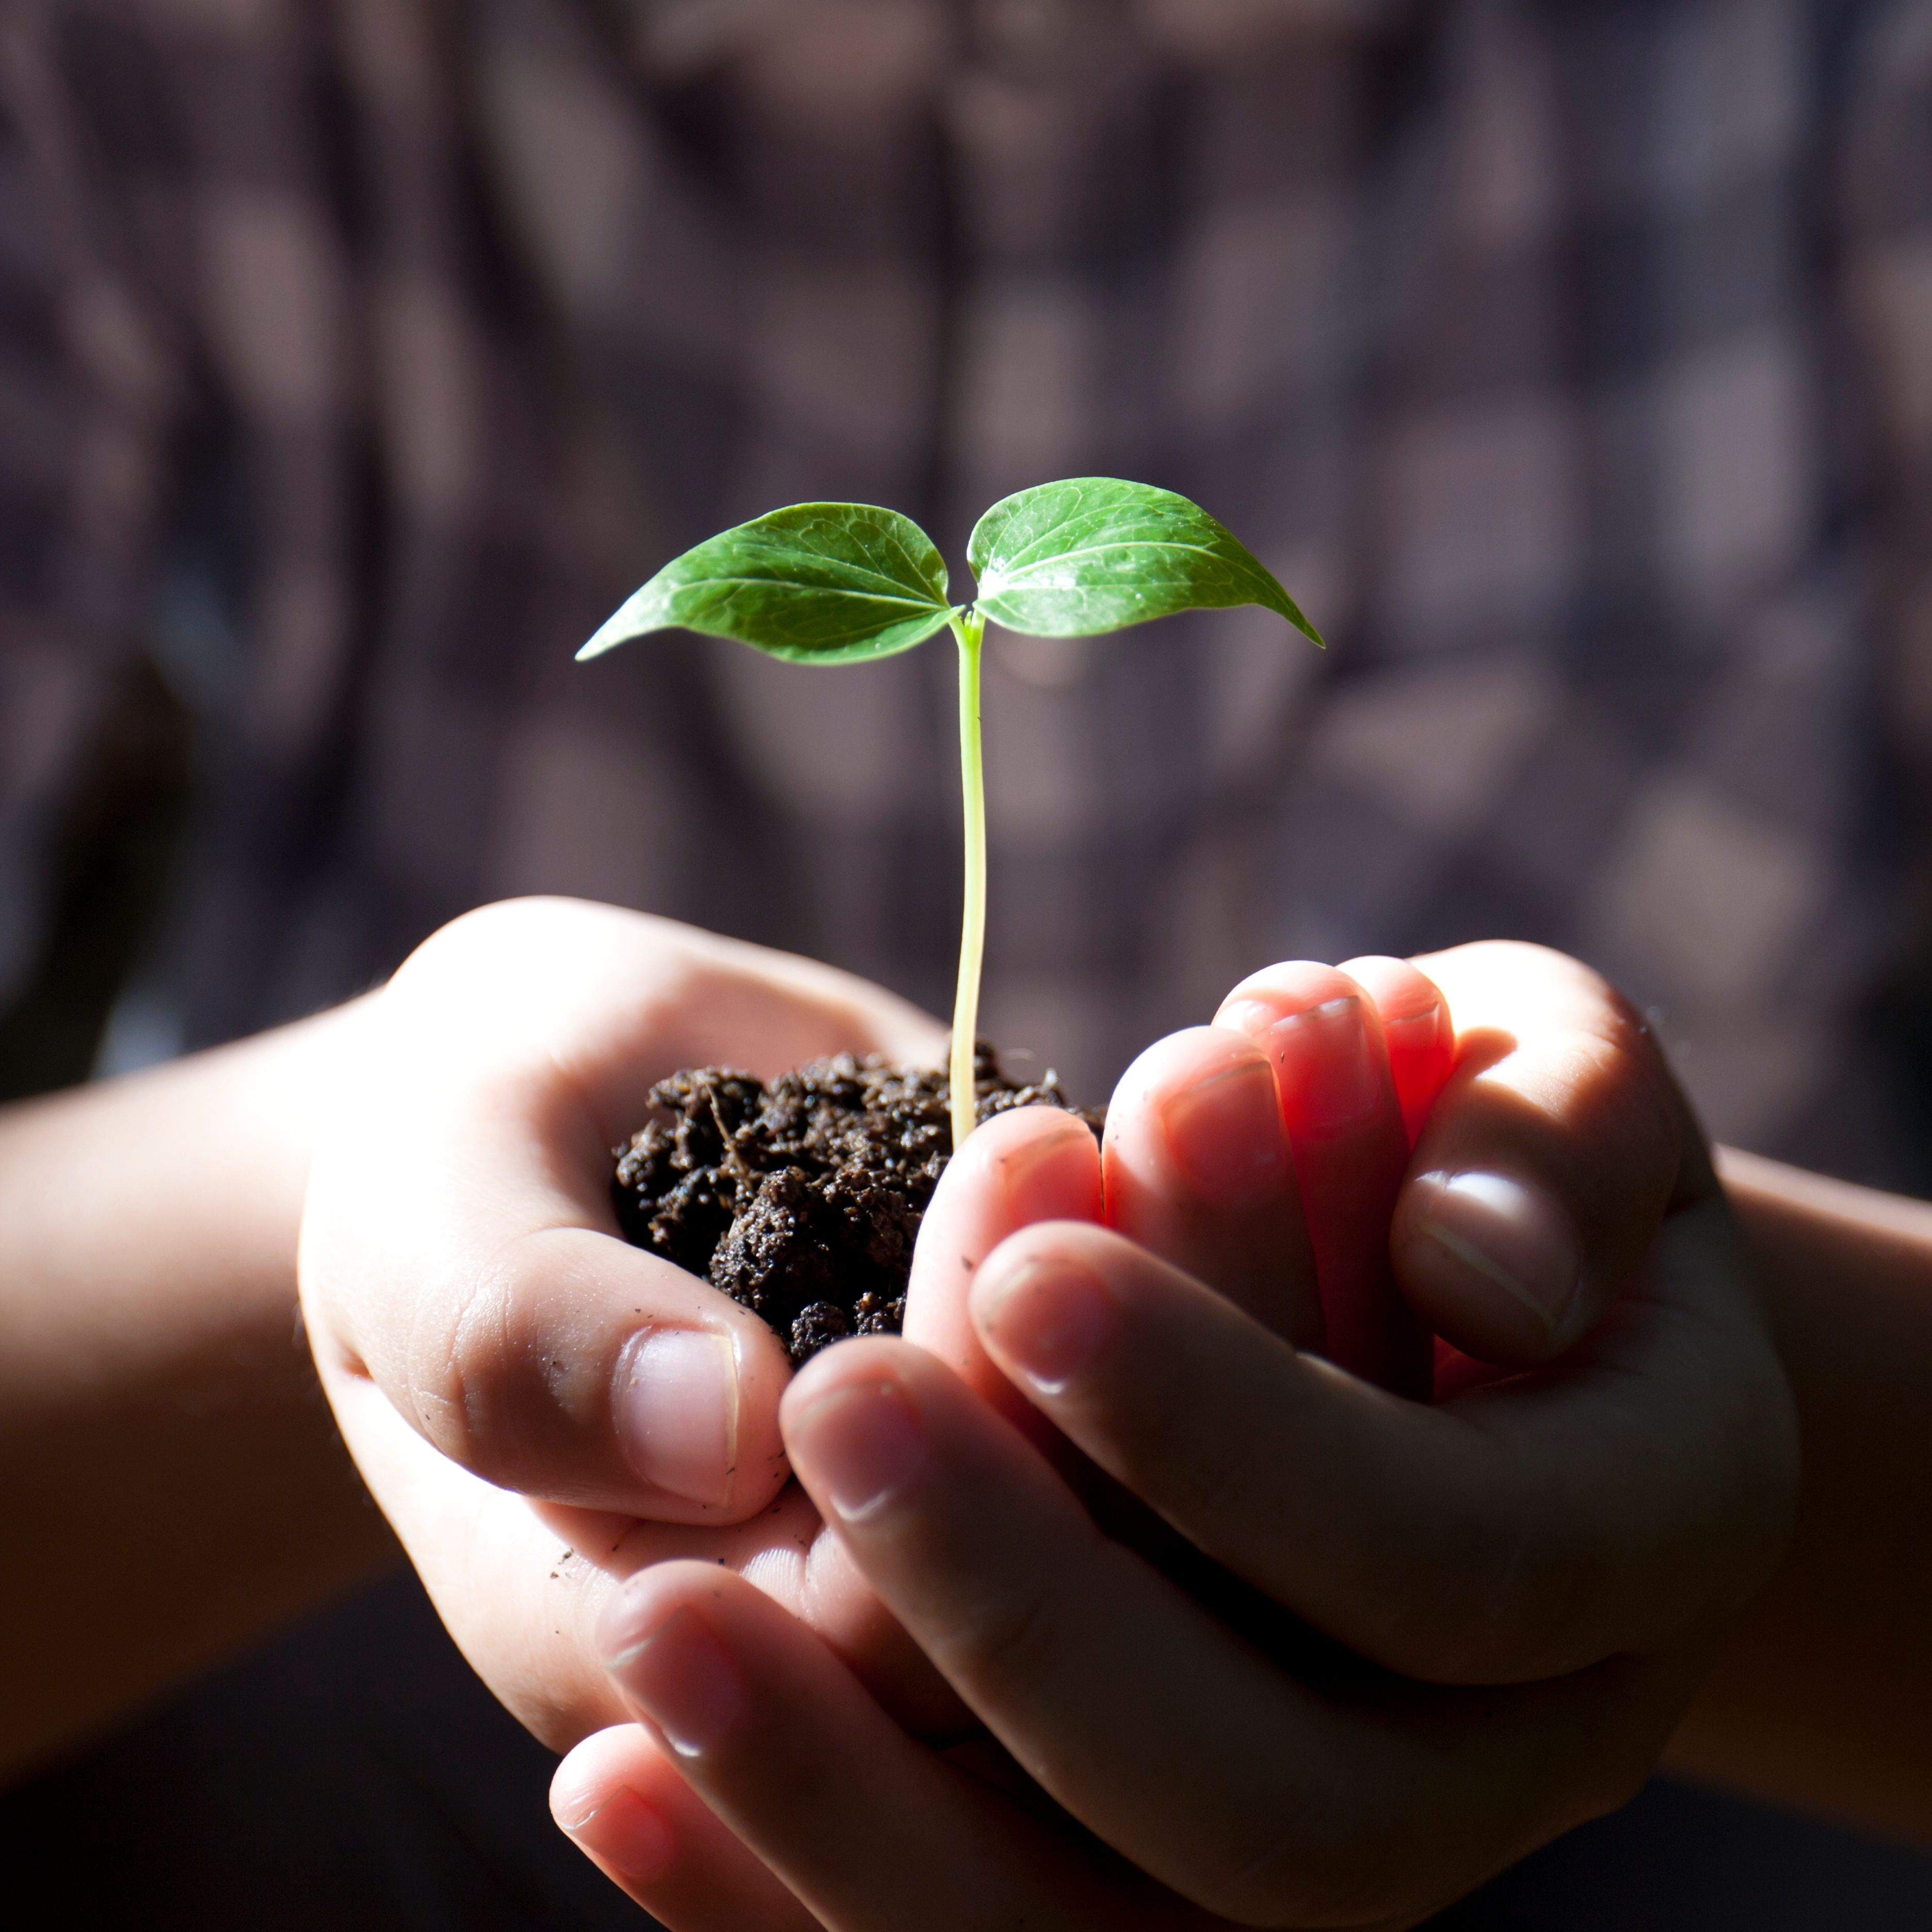 Compare The Life Cycle Of Flowerless Seed Plants And